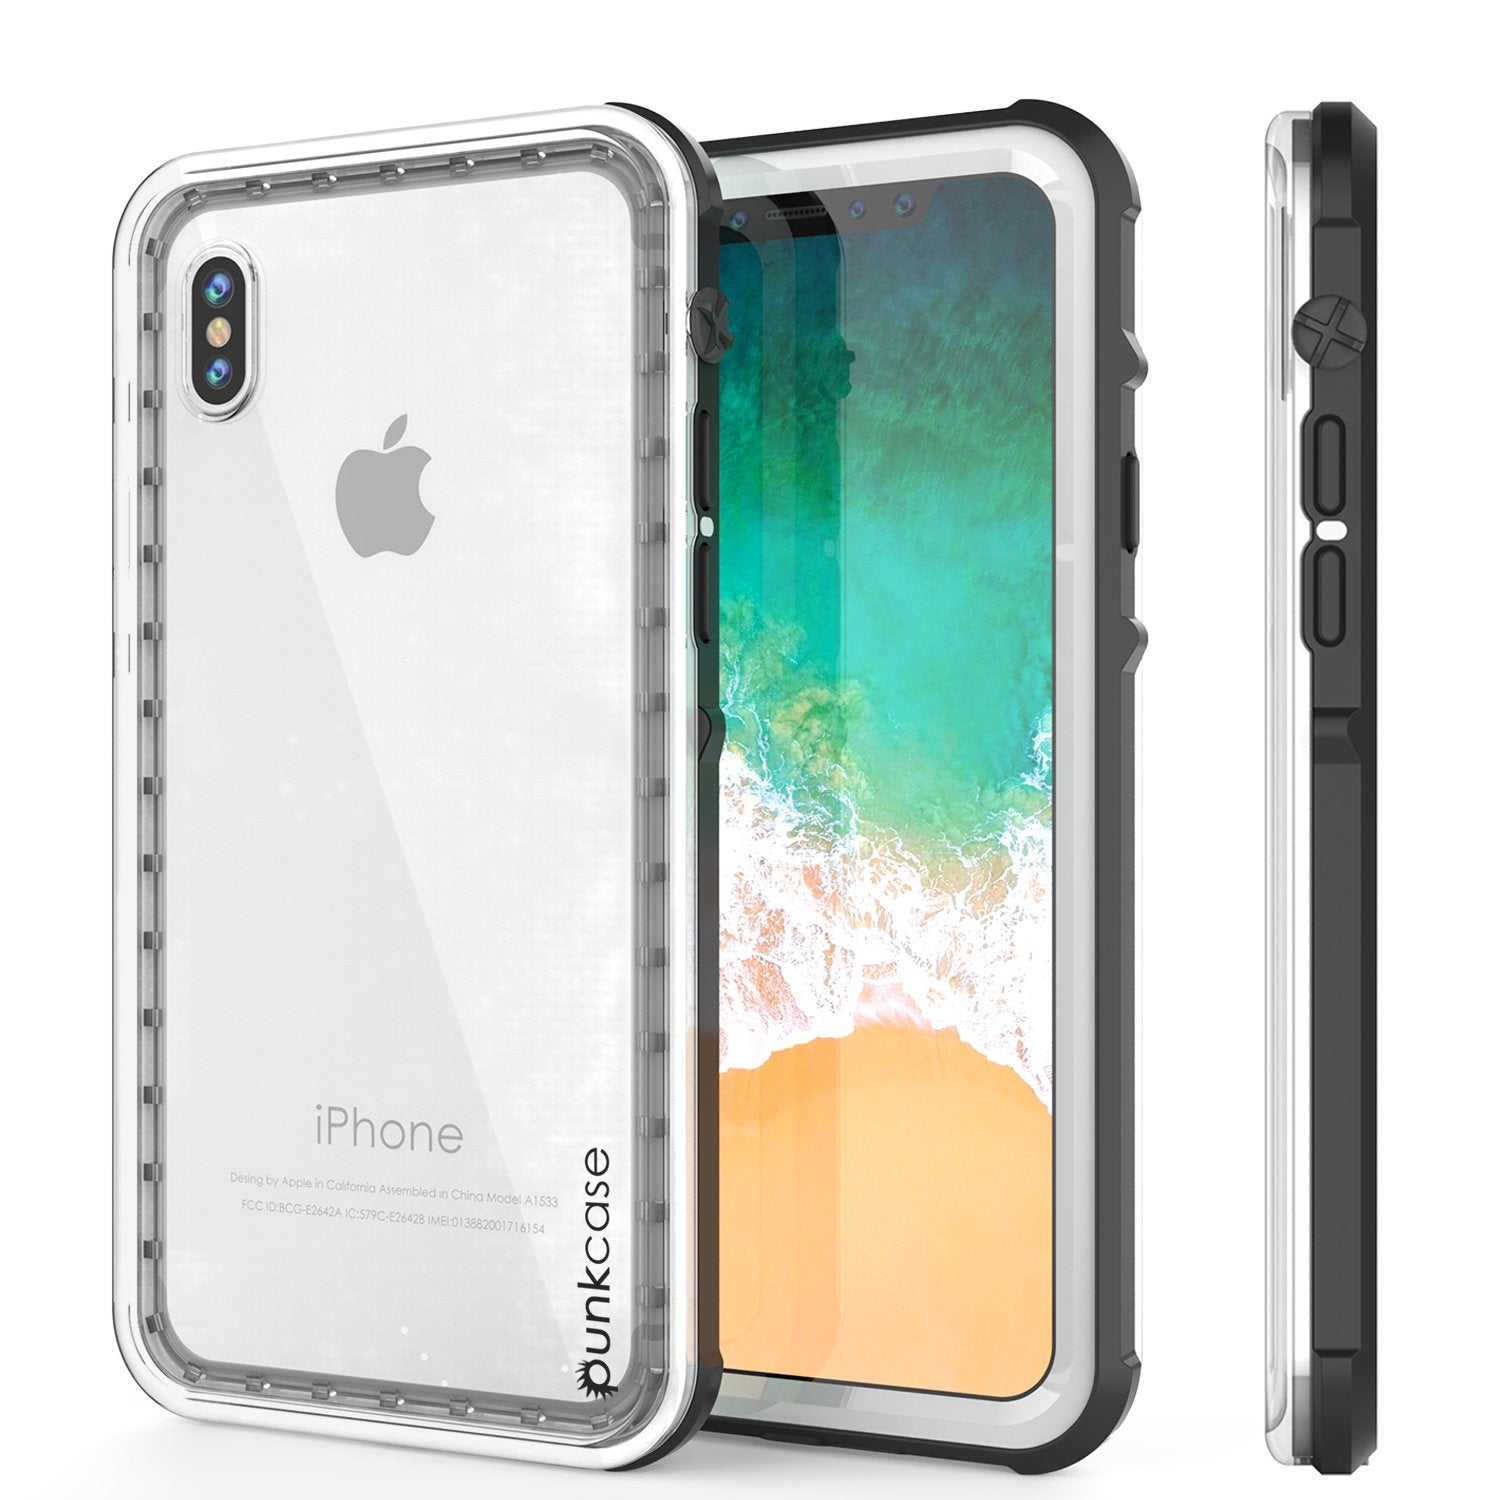 iPhone XS Case, PUNKCase [CRYSTAL SERIES] Protective IP68 Certified, Ultra Slim Fit [White]